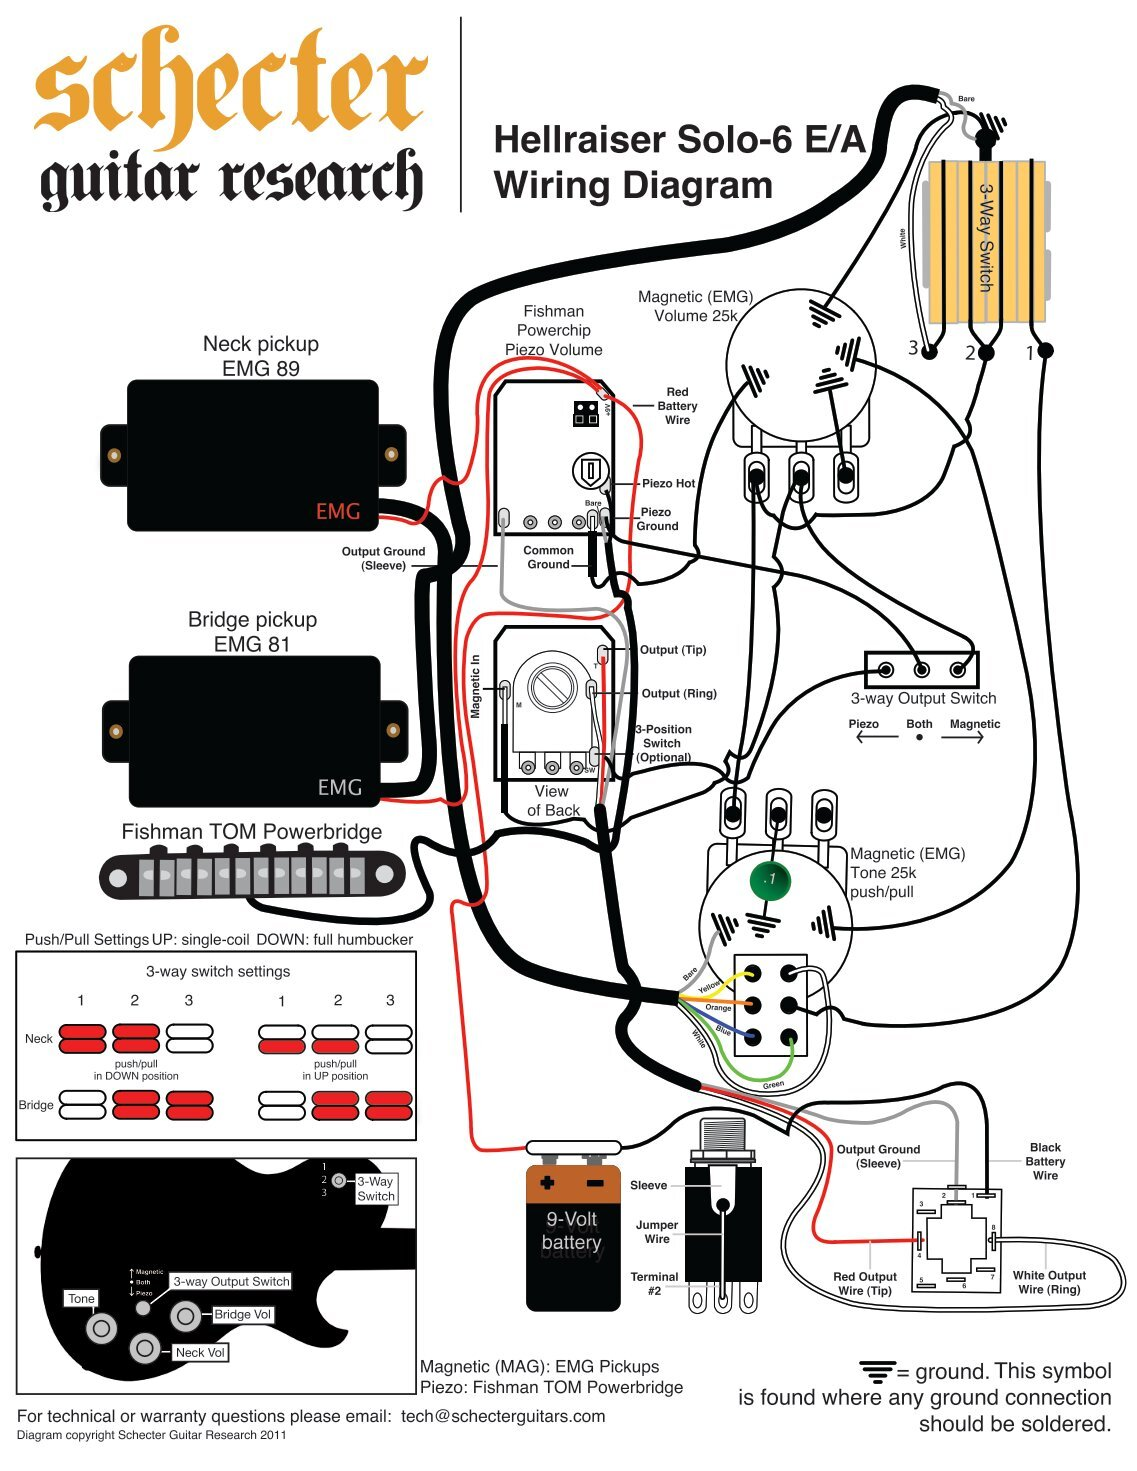 hellraiser solo 6 wiring diagram schecter guitars?quality\\\\\\\=85 fishman power chip wiring diagram wiring diagrams fishman powerbridge wiring diagram at gsmx.co